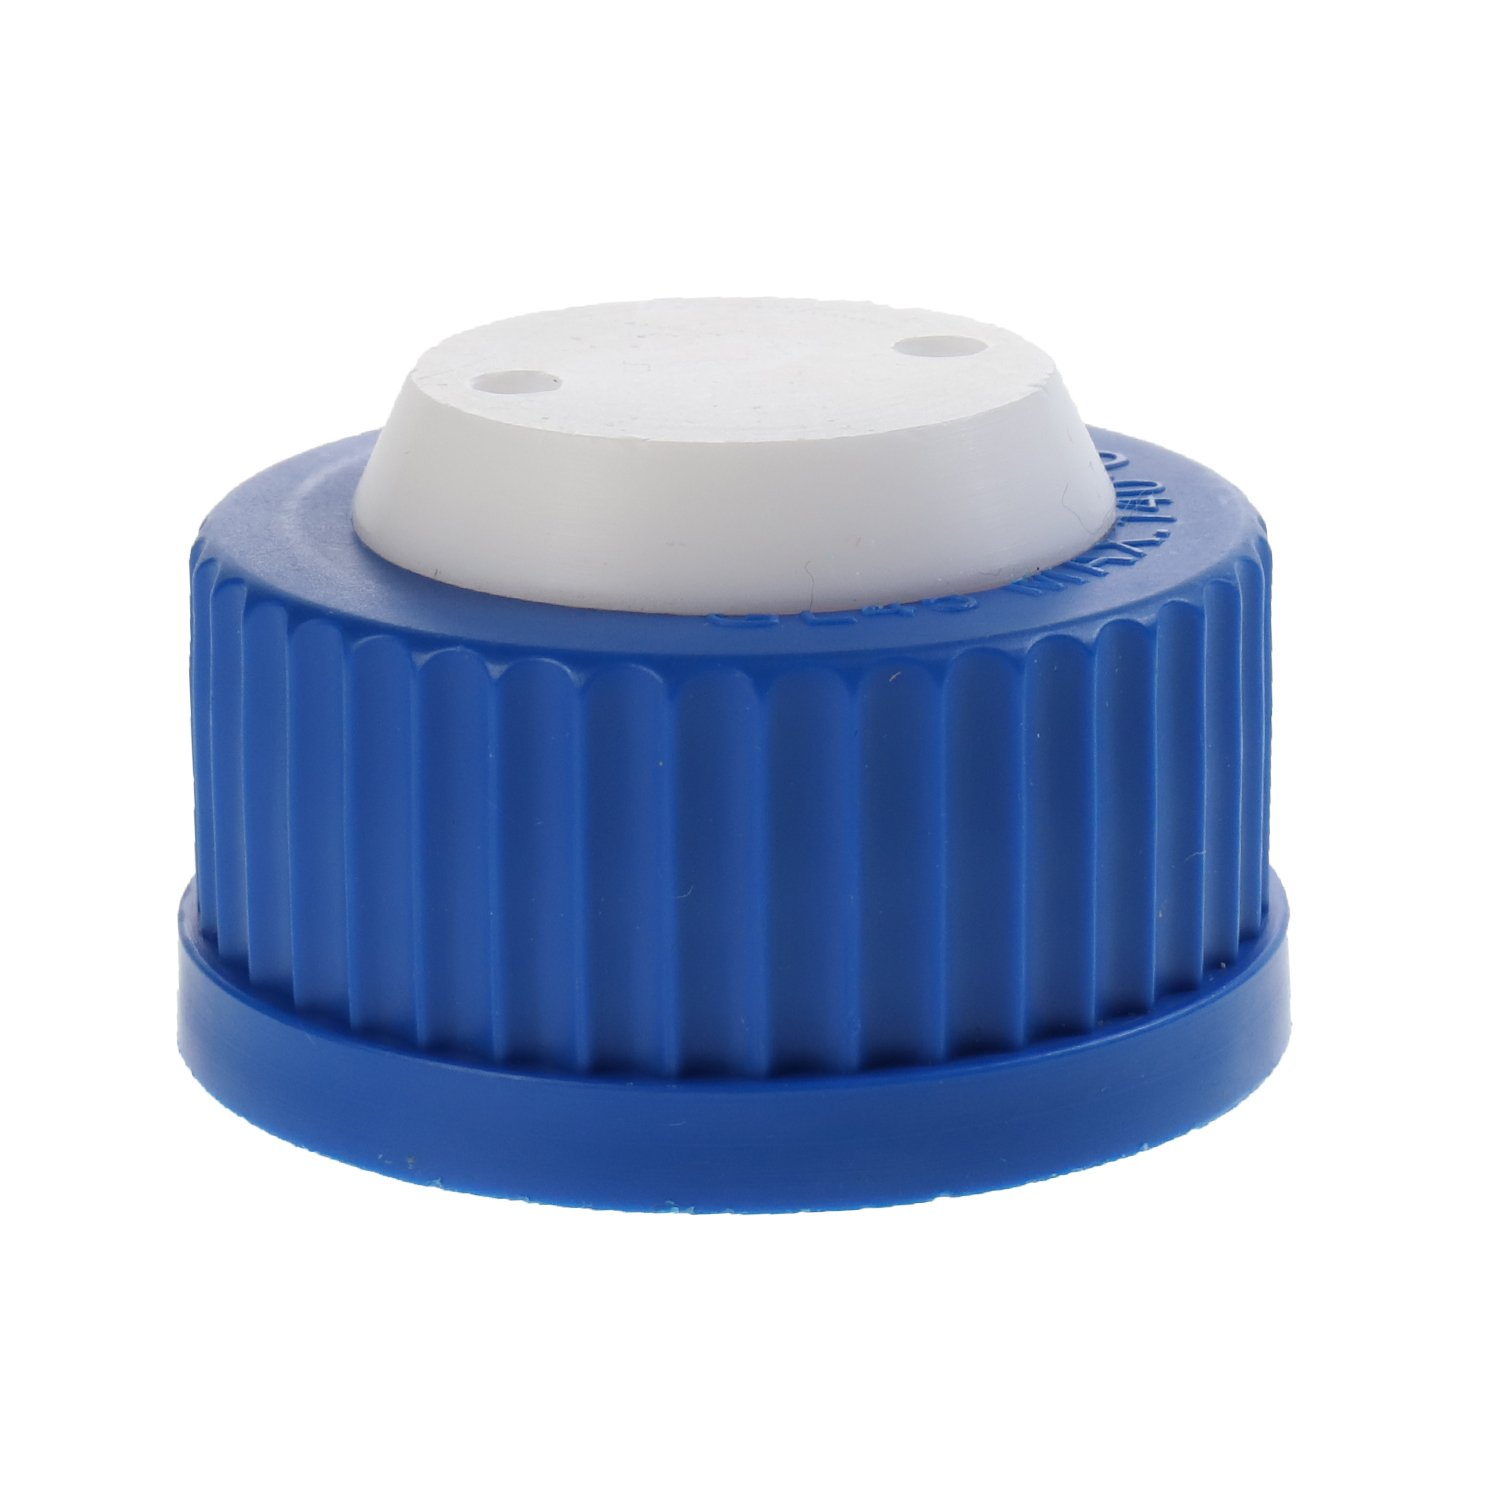 ALWSCI Blue GL45 Safety Cap withTwo Holes for 1/16 inch OD Tubing, 1pc/pk.